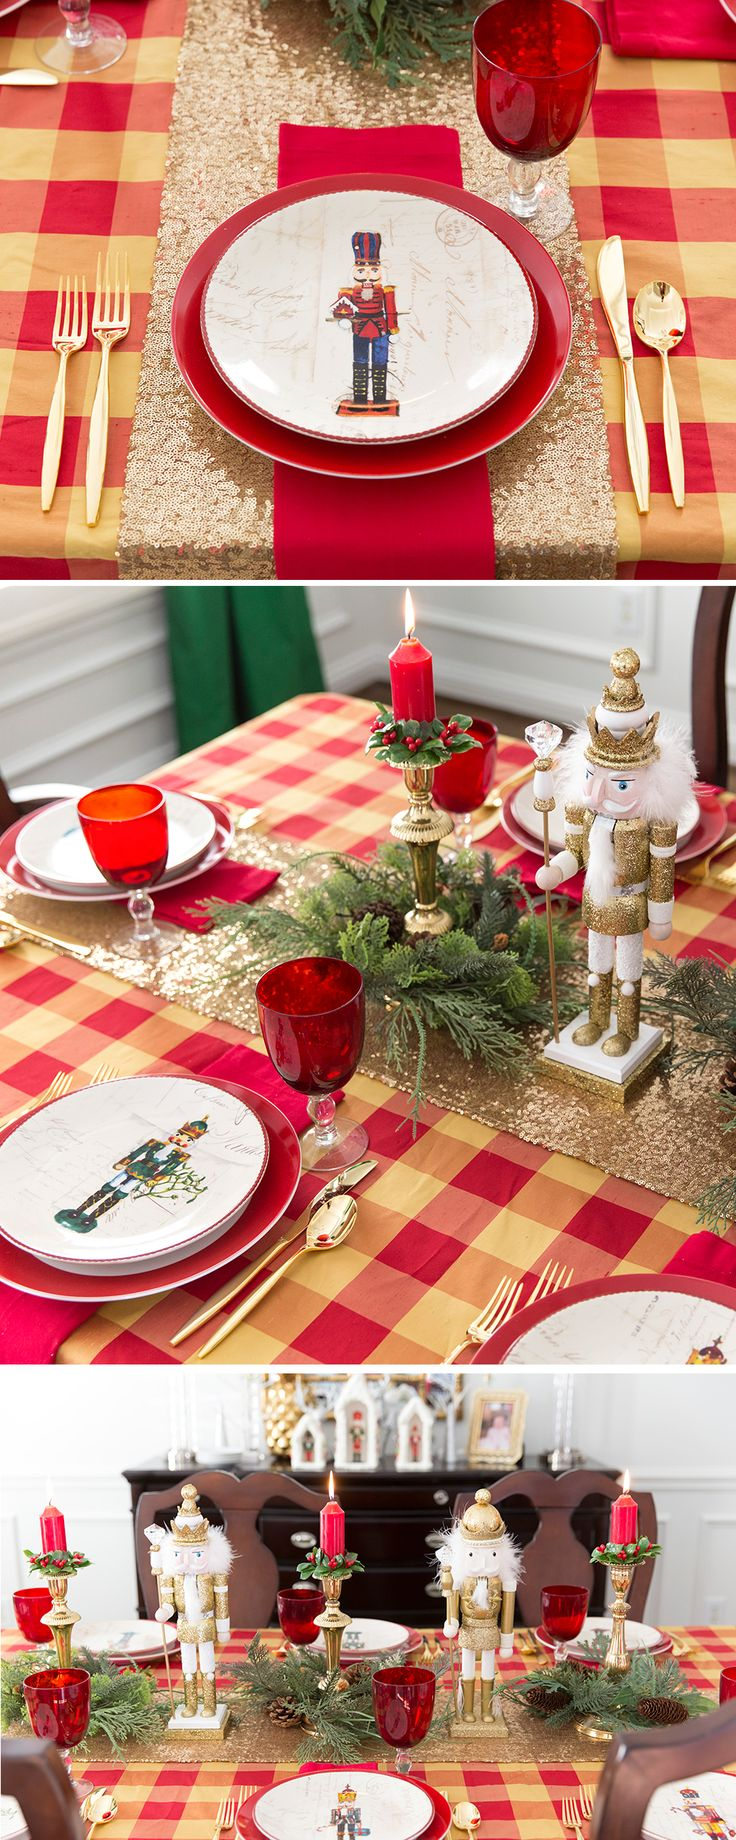 Christmas Nutcracker Party Table!